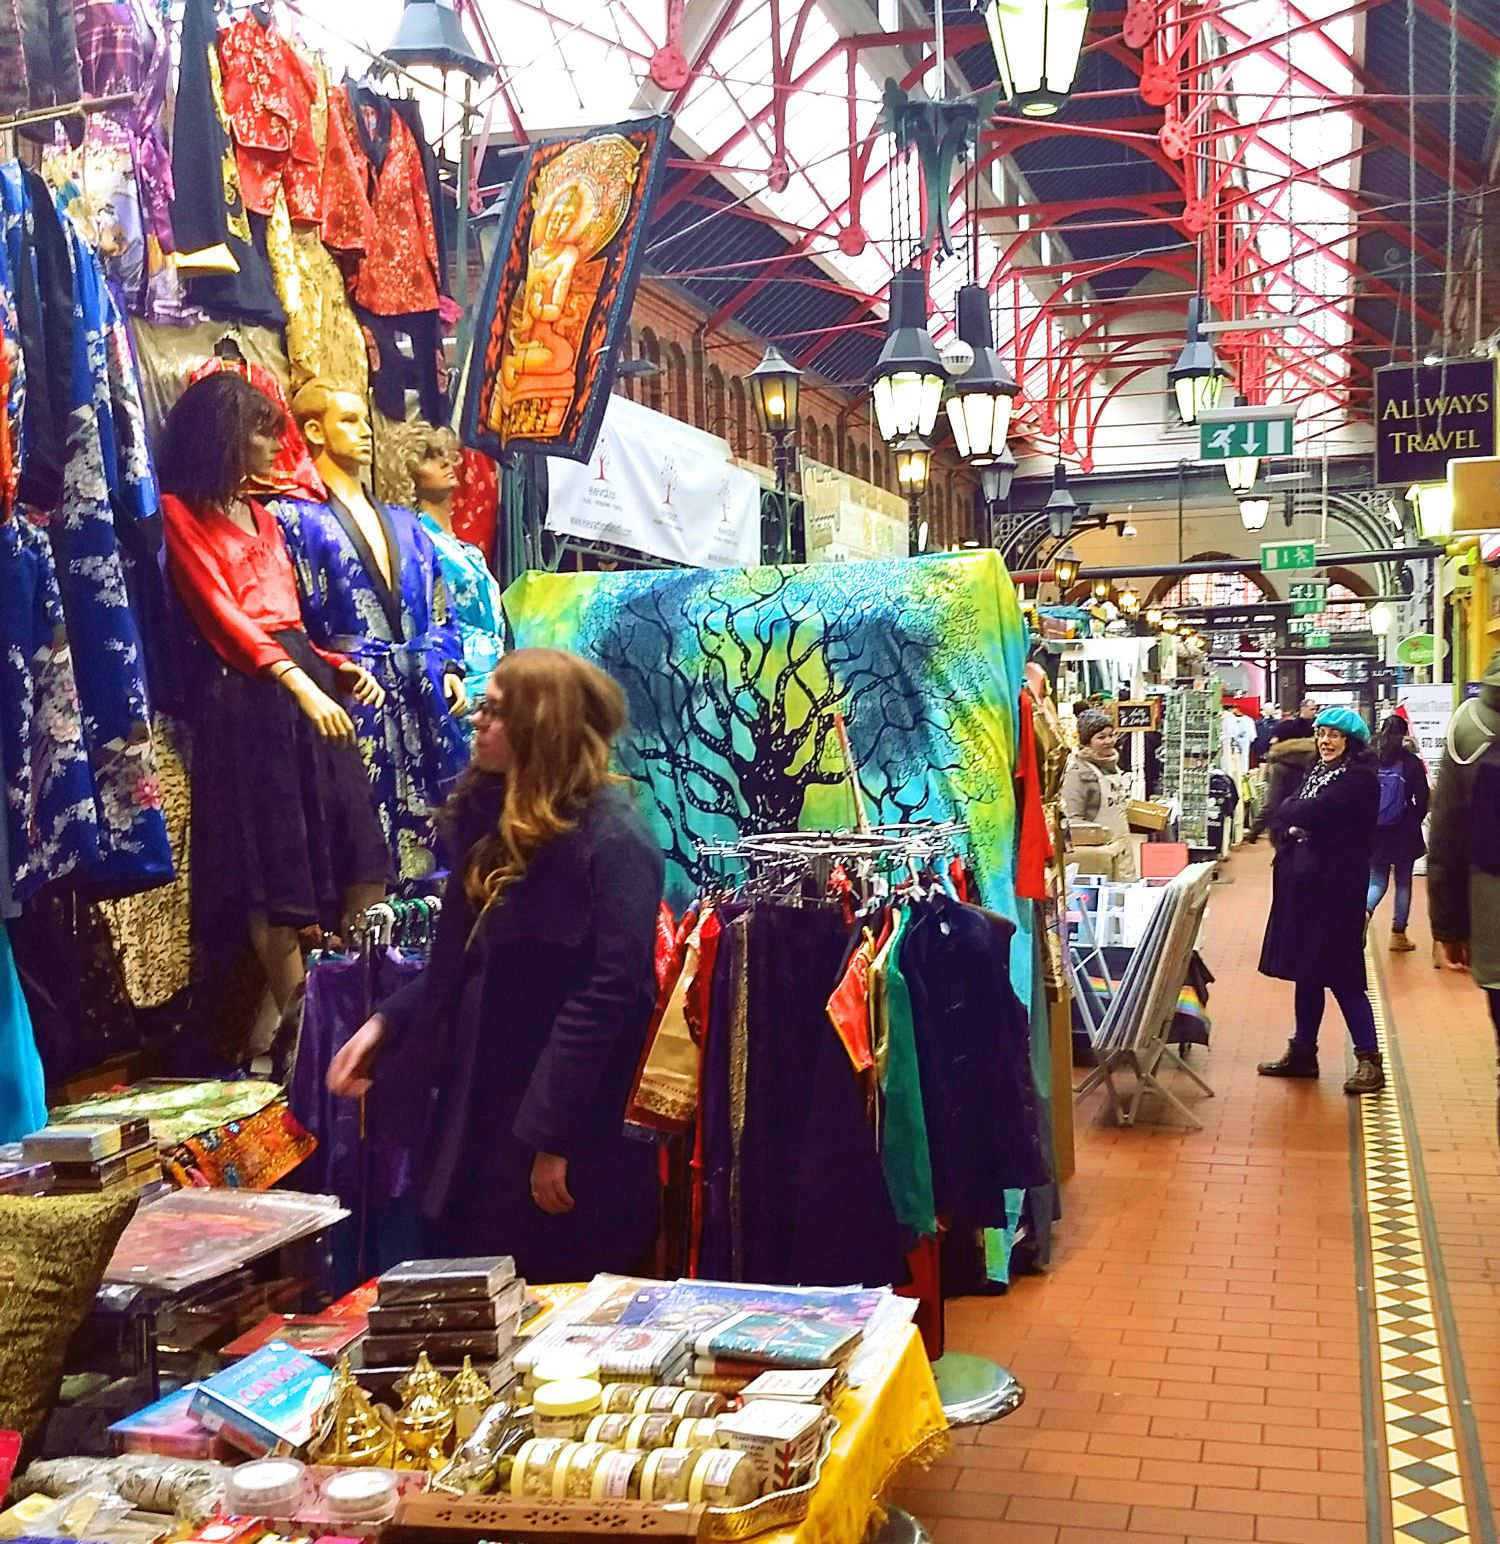 Quaint, quirky , colourful and cosy. George's Street Arcade.